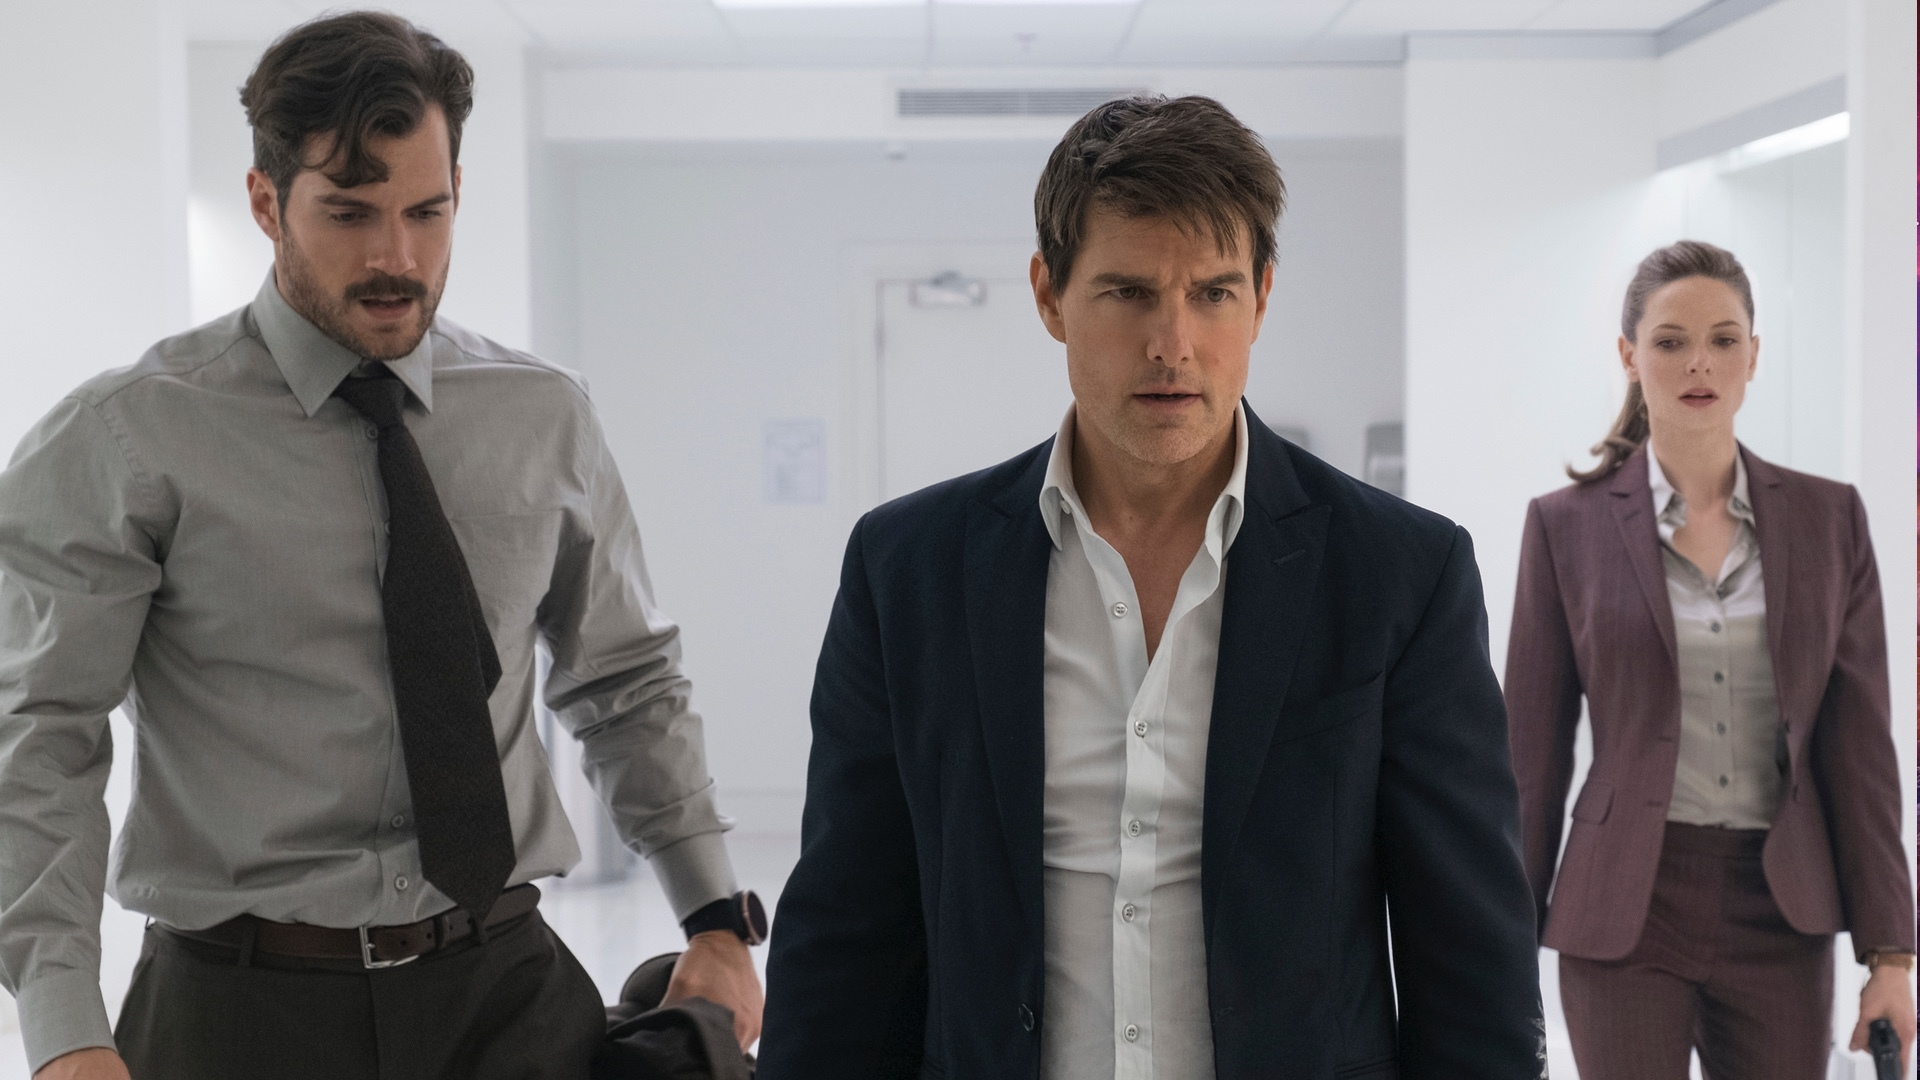 Mission Impossible Officially Delayed